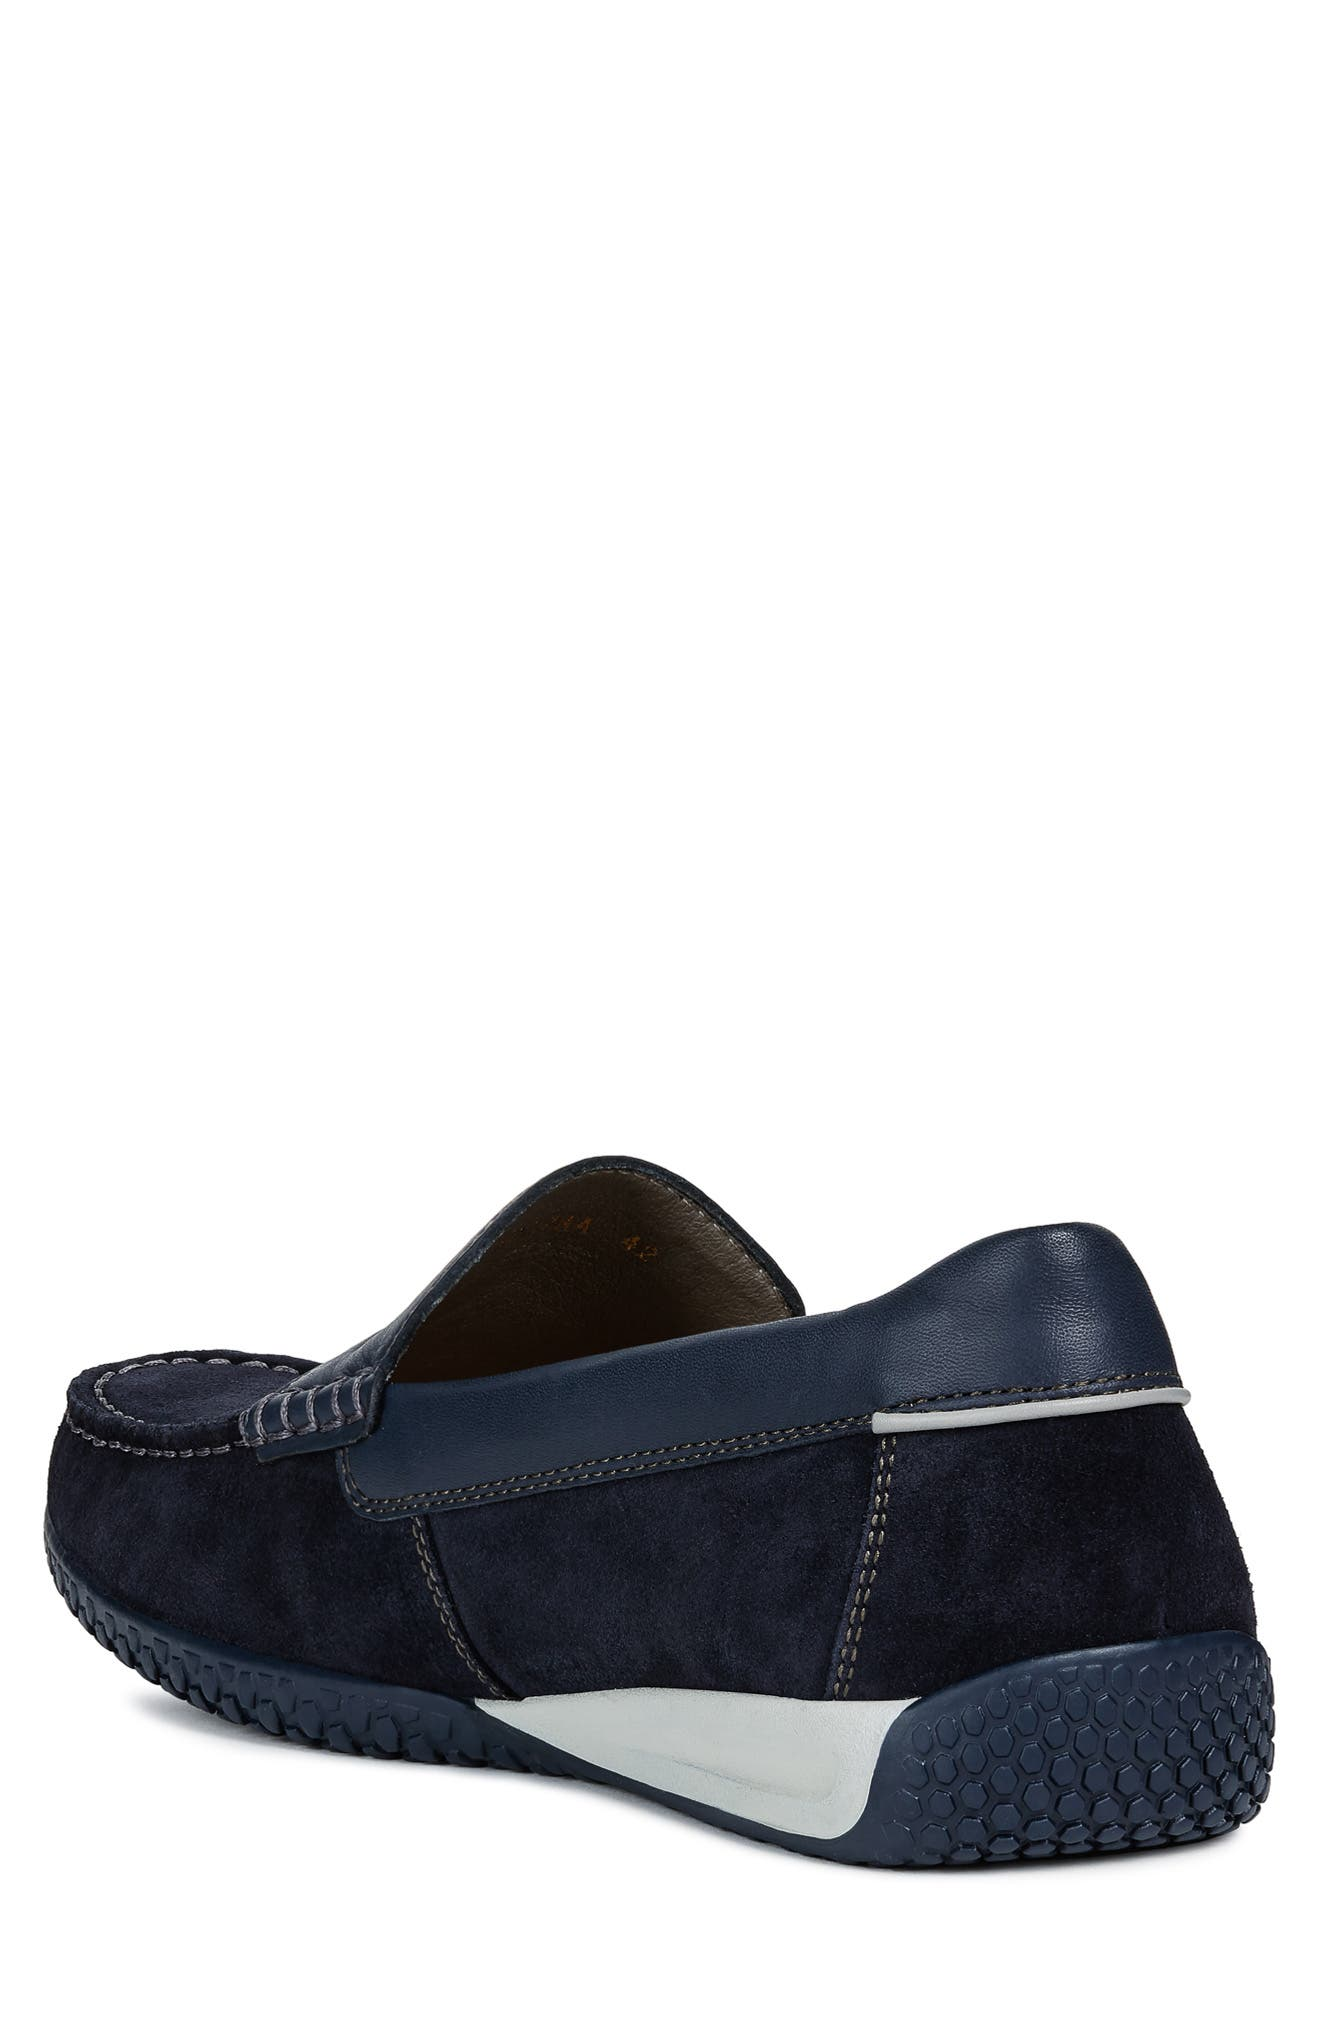 GEOX, Delrick 2 Slip-On, Alternate thumbnail 2, color, NAVY SUEDE/ LEATHER